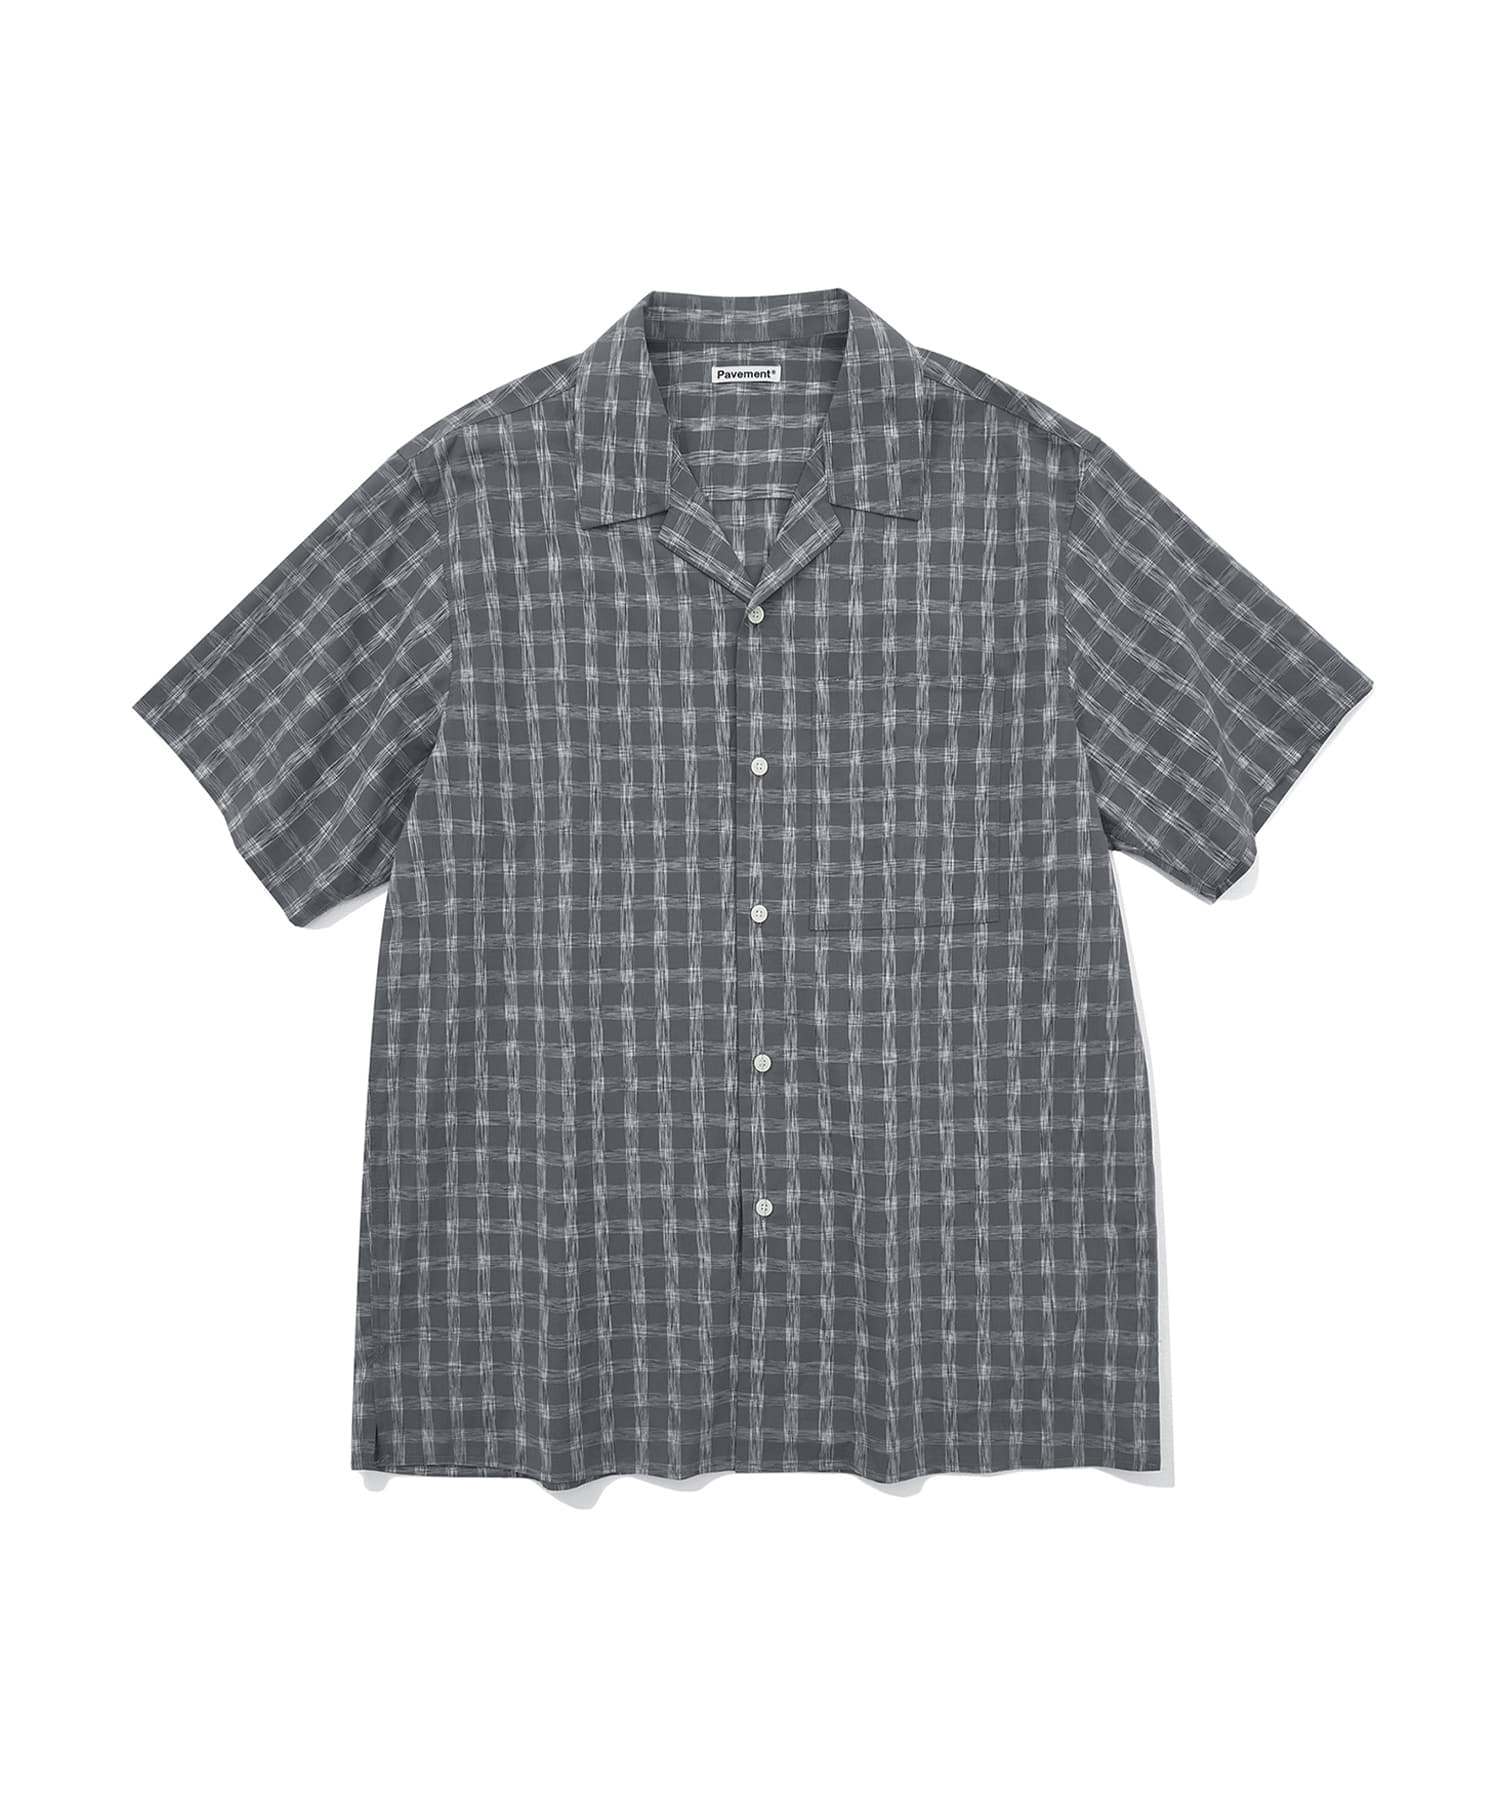 CHECK S/S SHIRTS JH [GRAY]